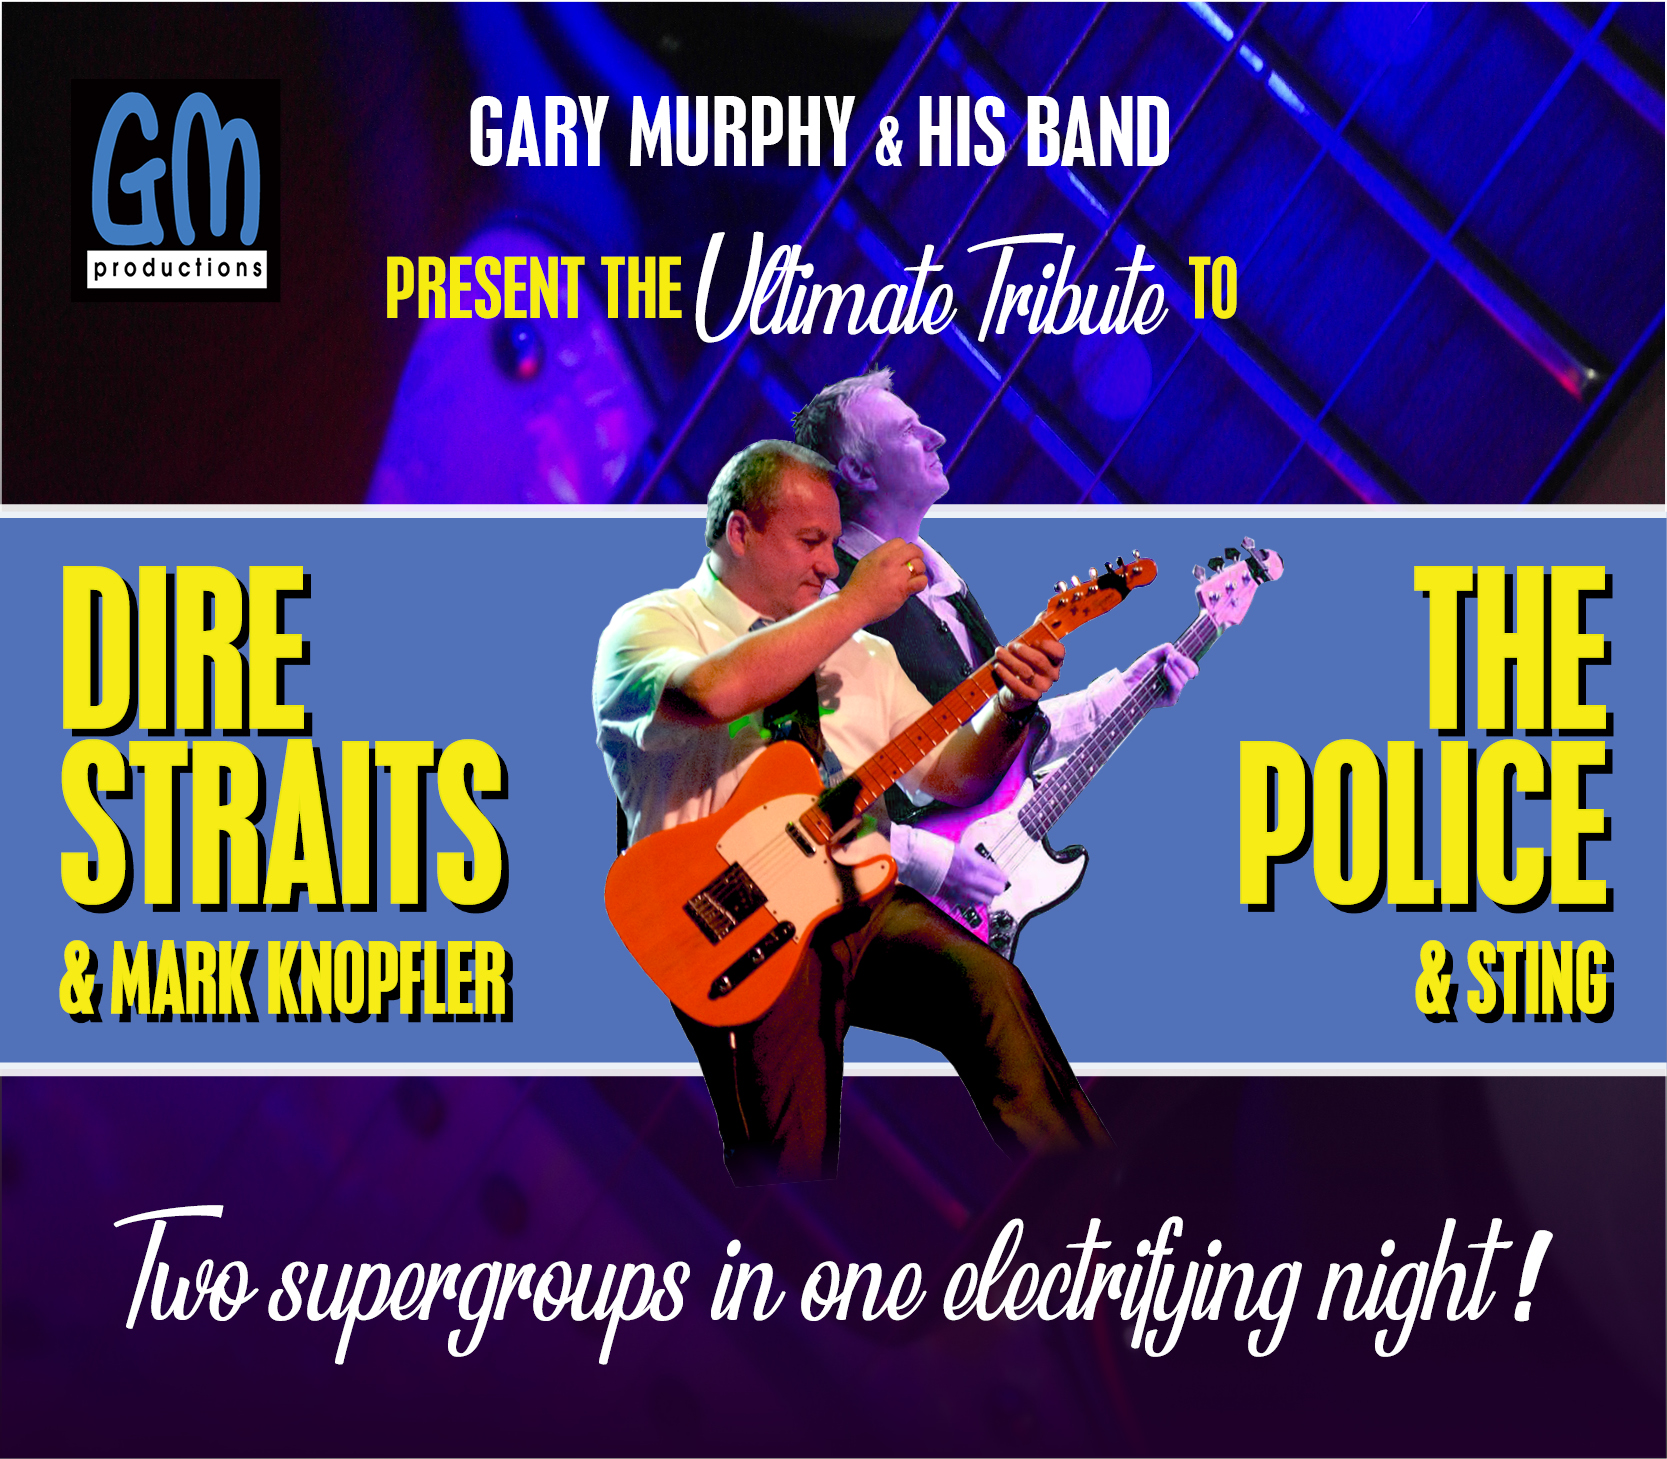 Friday 27th August 2021, 7:30pmRescheduled from Sat 1st May 2021All Tickets £21.50Two supergroups in one electrifying night!Gary Murphy and his multi-talented band return to the Floral Pavilion Theatre with the Ultimate Tribute to two supergroups Dire Straits & Mark Knopfler and The Police & Sting The show features all the greatest hits from both groups including Money for Nothing, Message In A Bottle, Sultans of Swing, Roxanne, Walk of Life, Every Breath You Take and many more...Featuring Gary Murphy as Mark Knopfler, Rob Shirley as Sting and Adam Goldberg as Stuart Copeland. Gary Murphy is regarded as one of the finest guitarists in the UK and this show will be a night to remember and is not to be missed.All prices advertised include a booking fee. No fees to Friends of the Floral. A postage fee may apply.